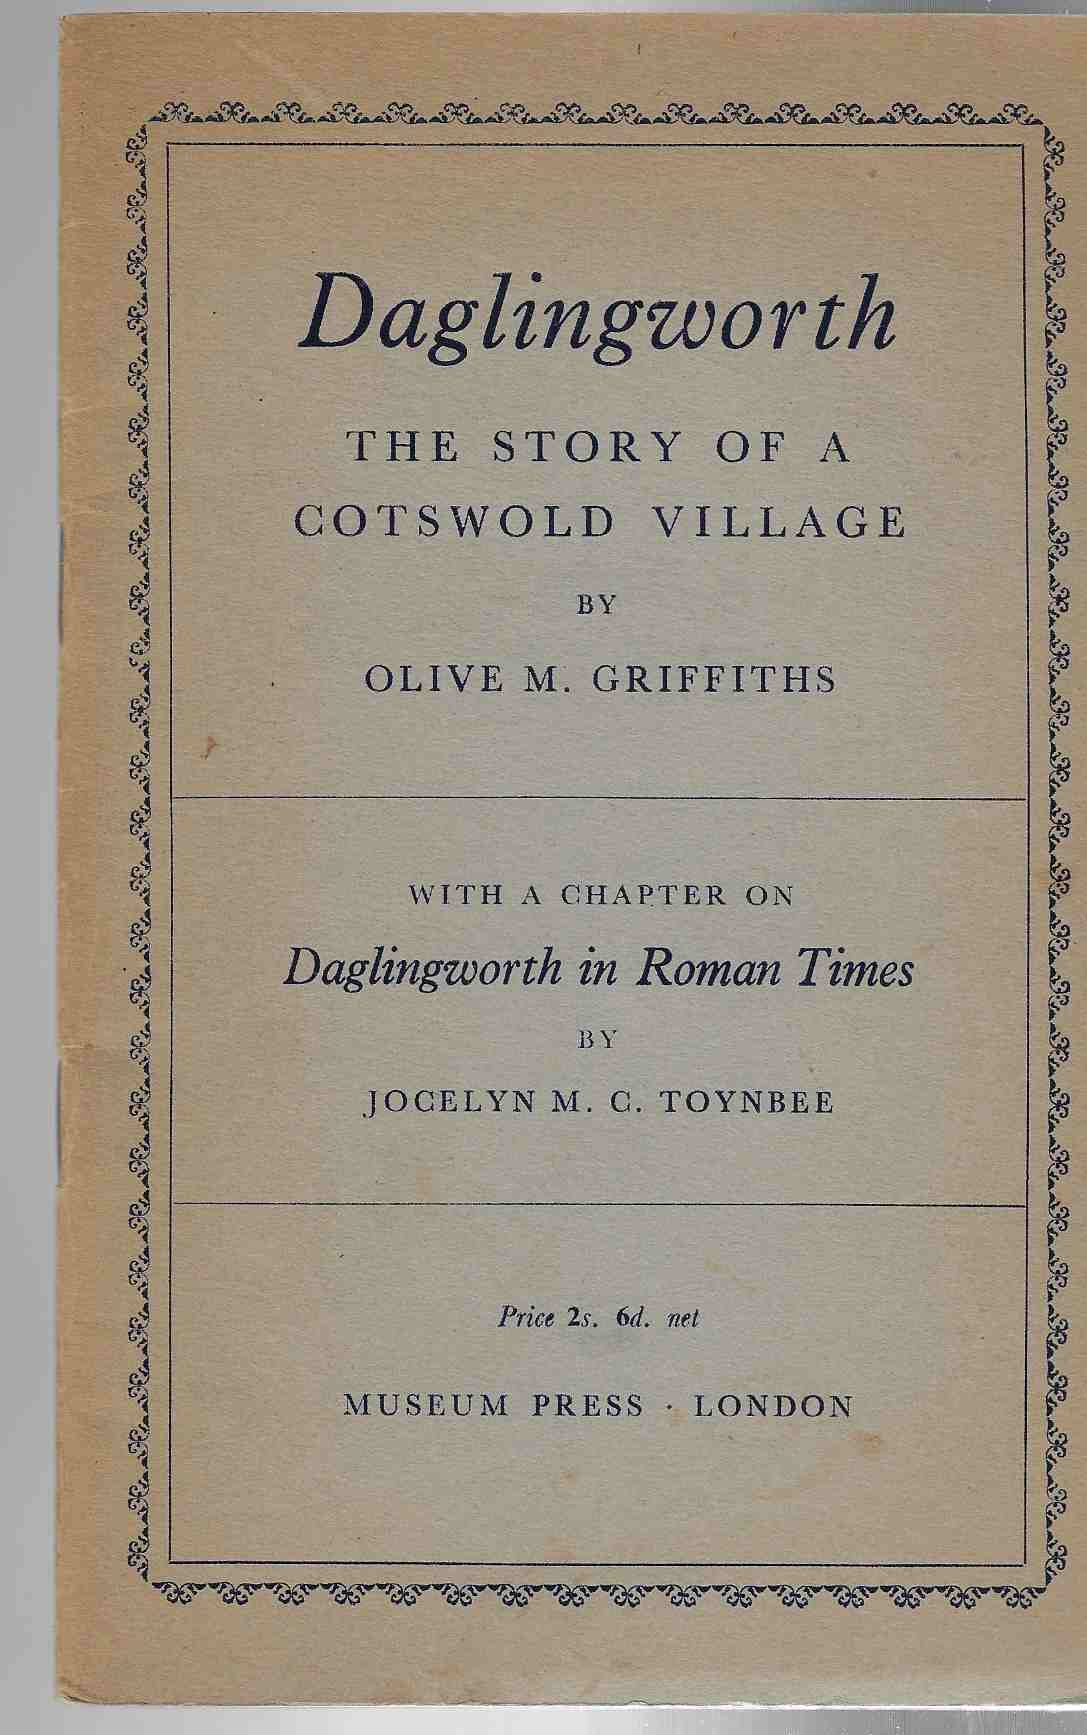 Image for Daglingworth: The Story of Cotswold Village. With a Chapter on Daglingworth in Roman Times.